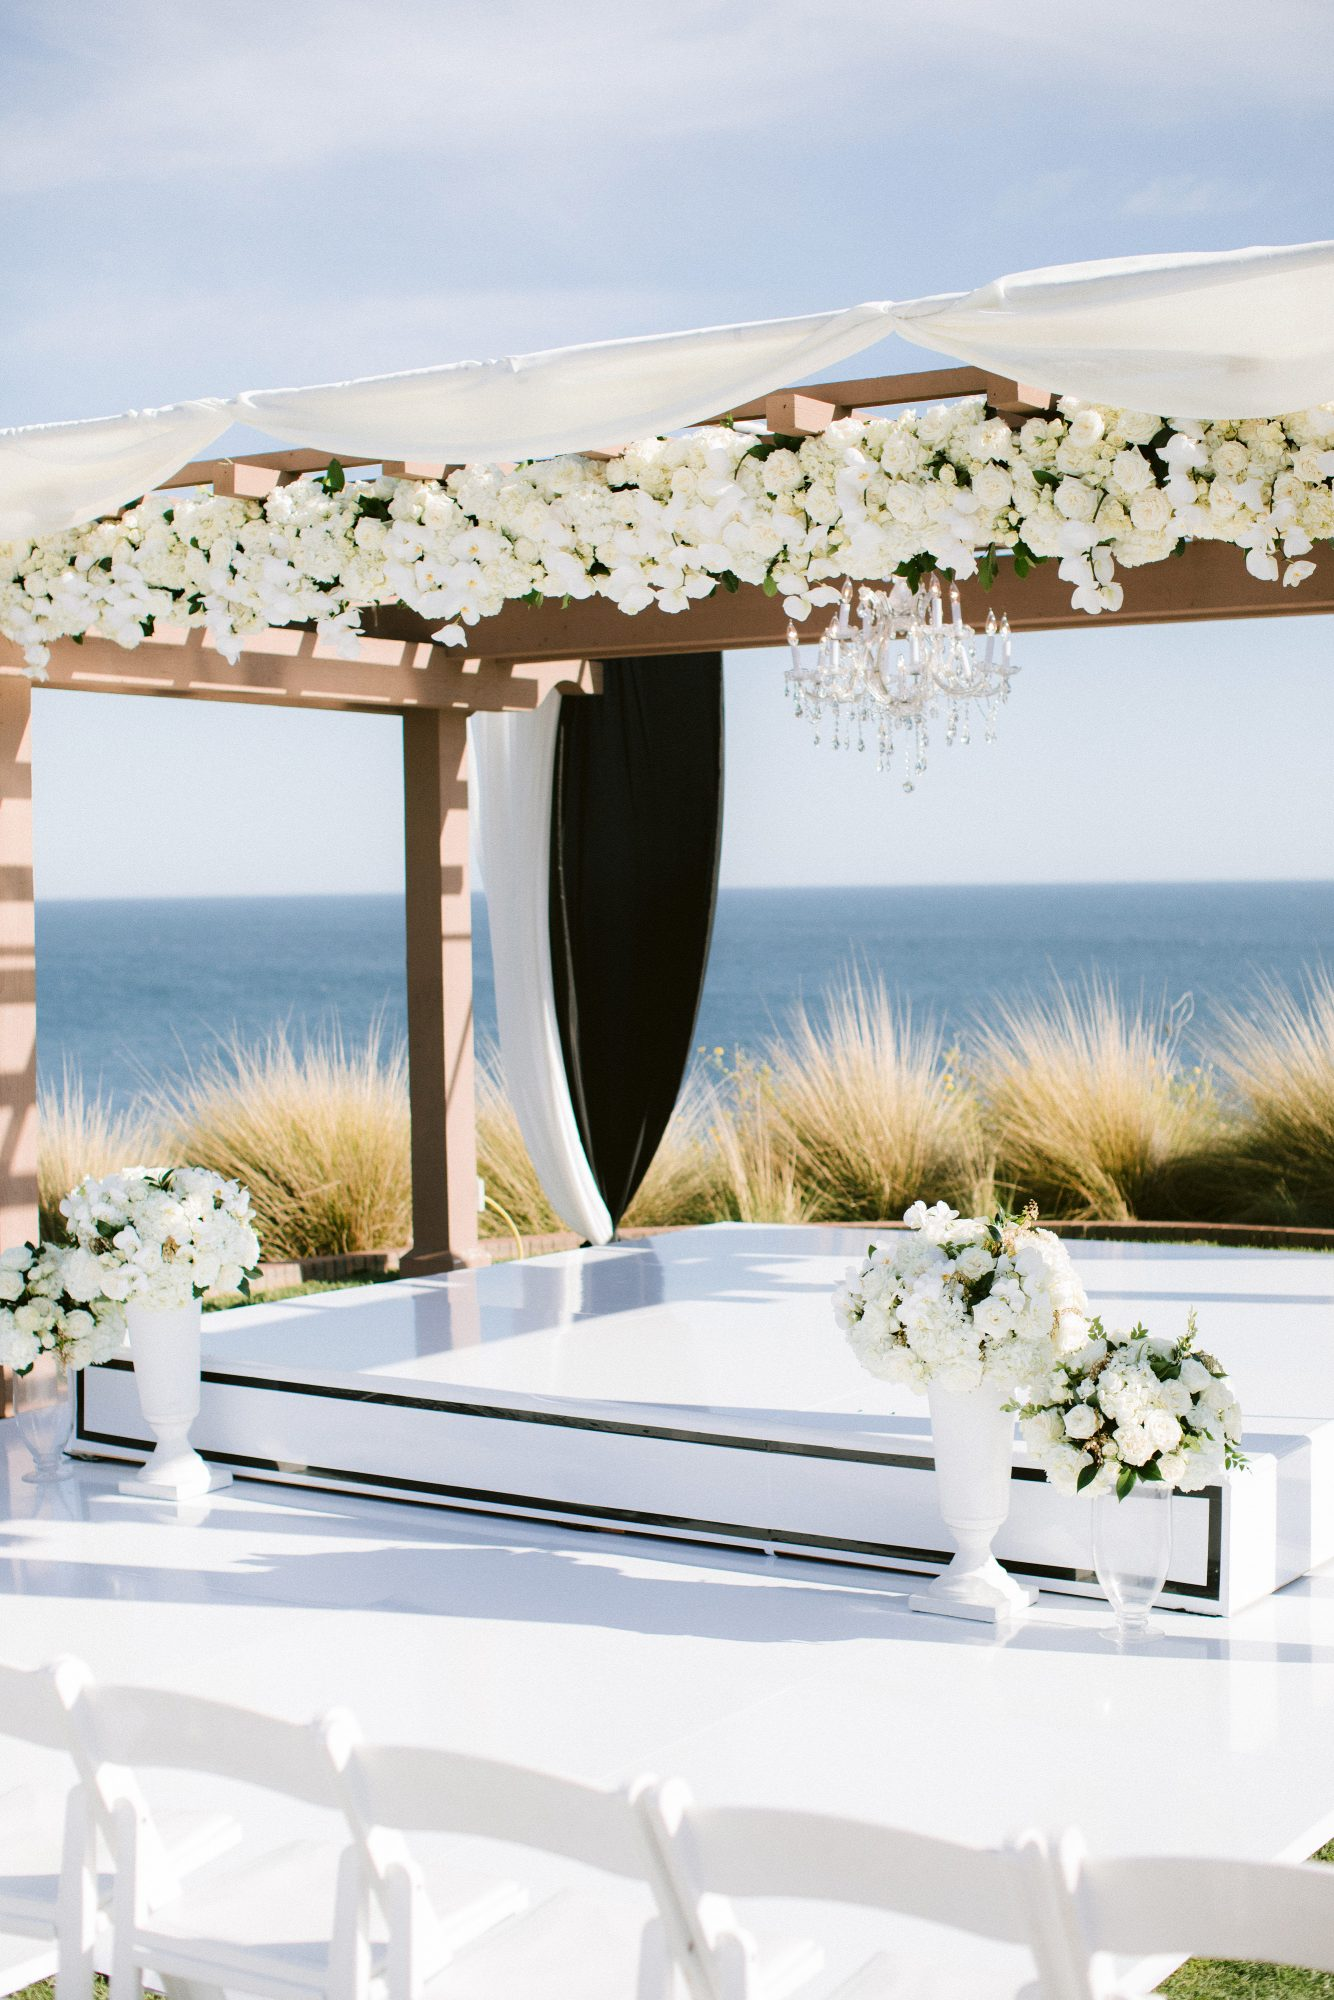 henery michael wedding ceremony floral structure